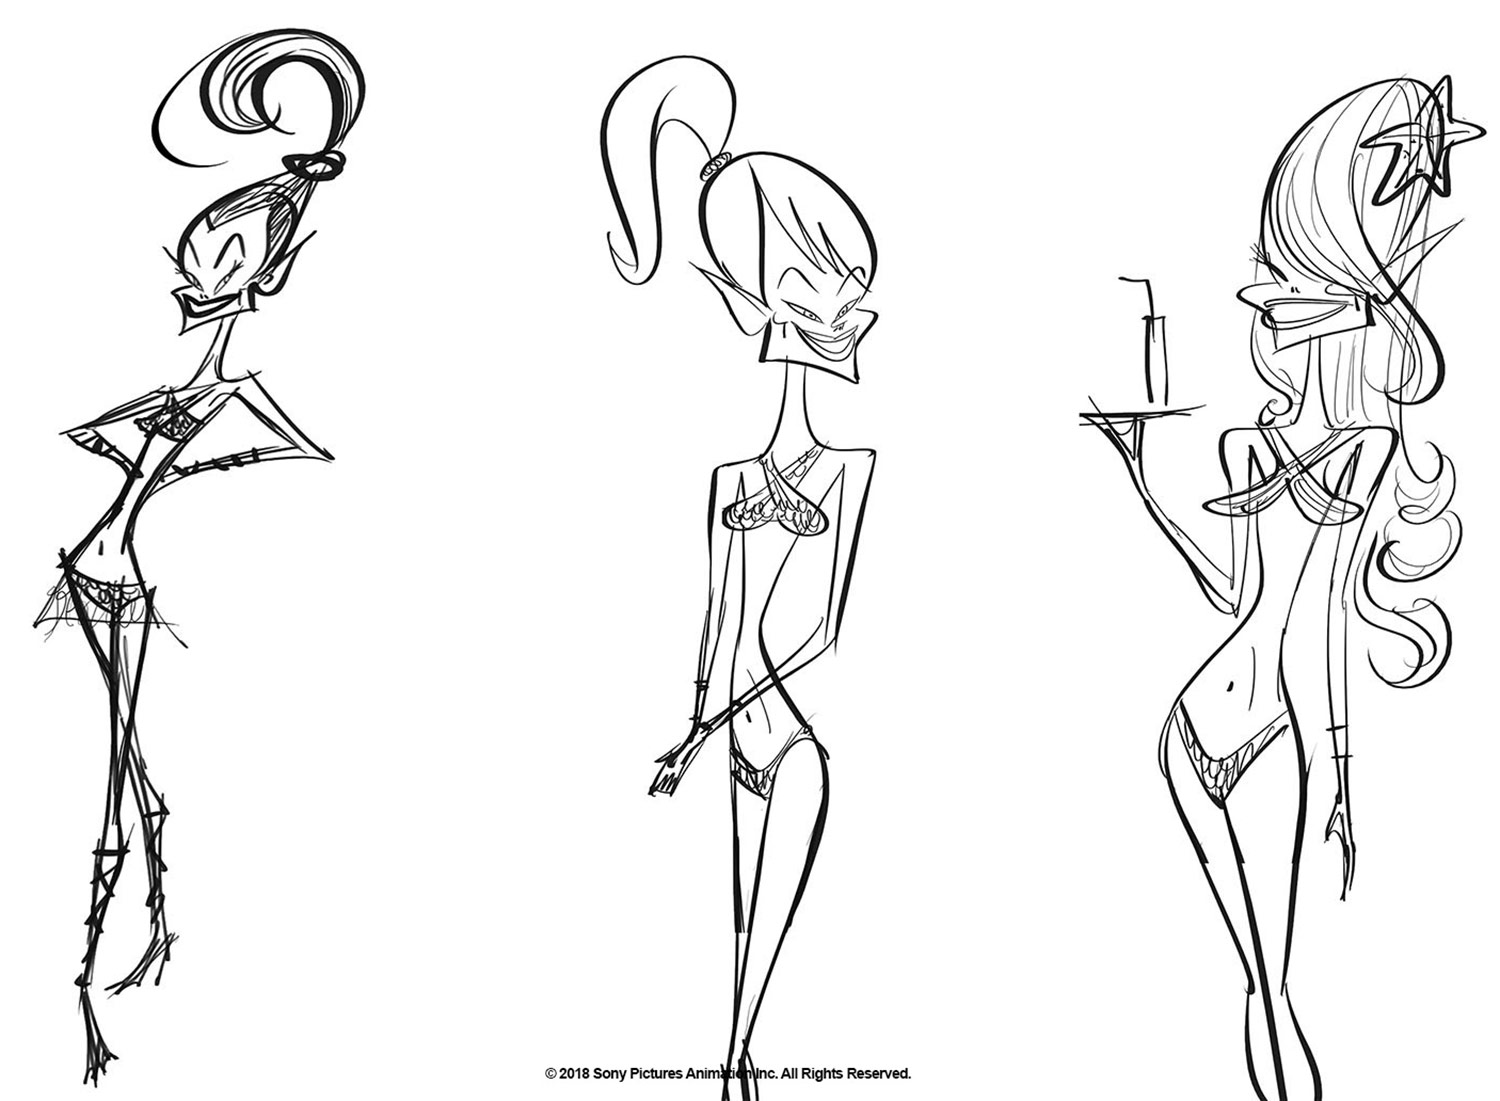 Atlanteans character concepts by Craig Kellman.